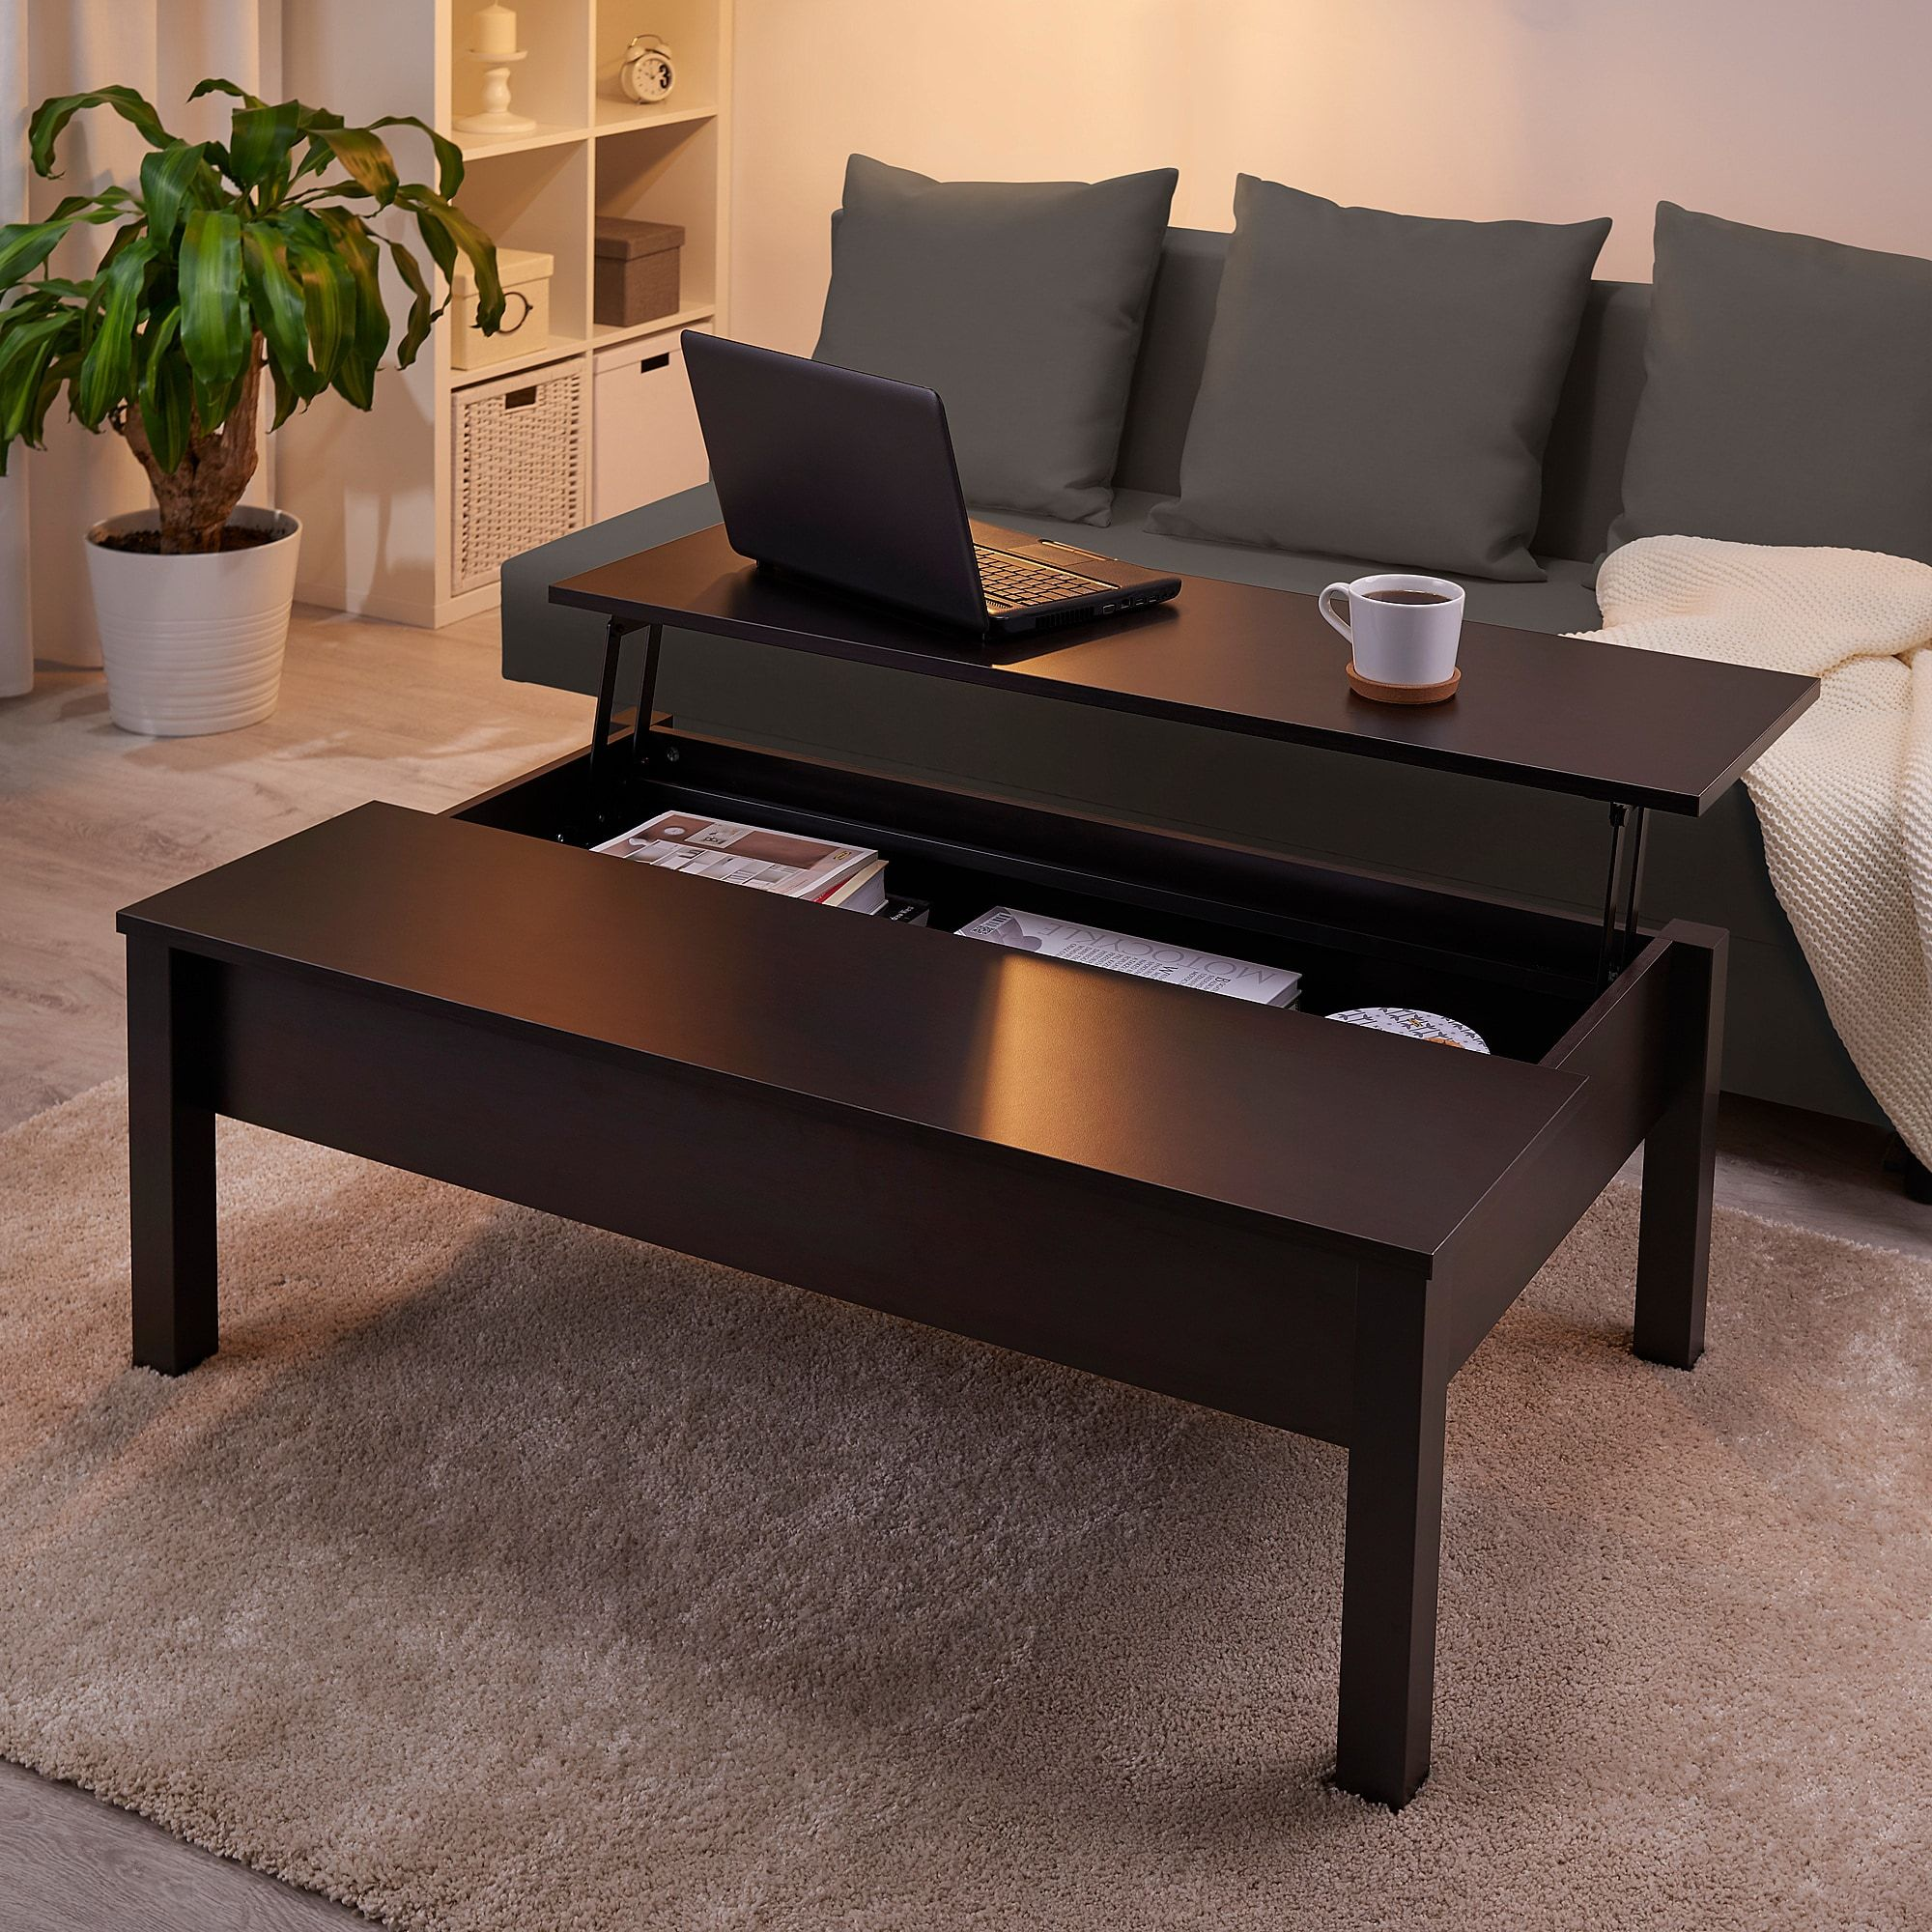 Ikea Trulstorp Black Brown Coffee Table In 2019 Decorating